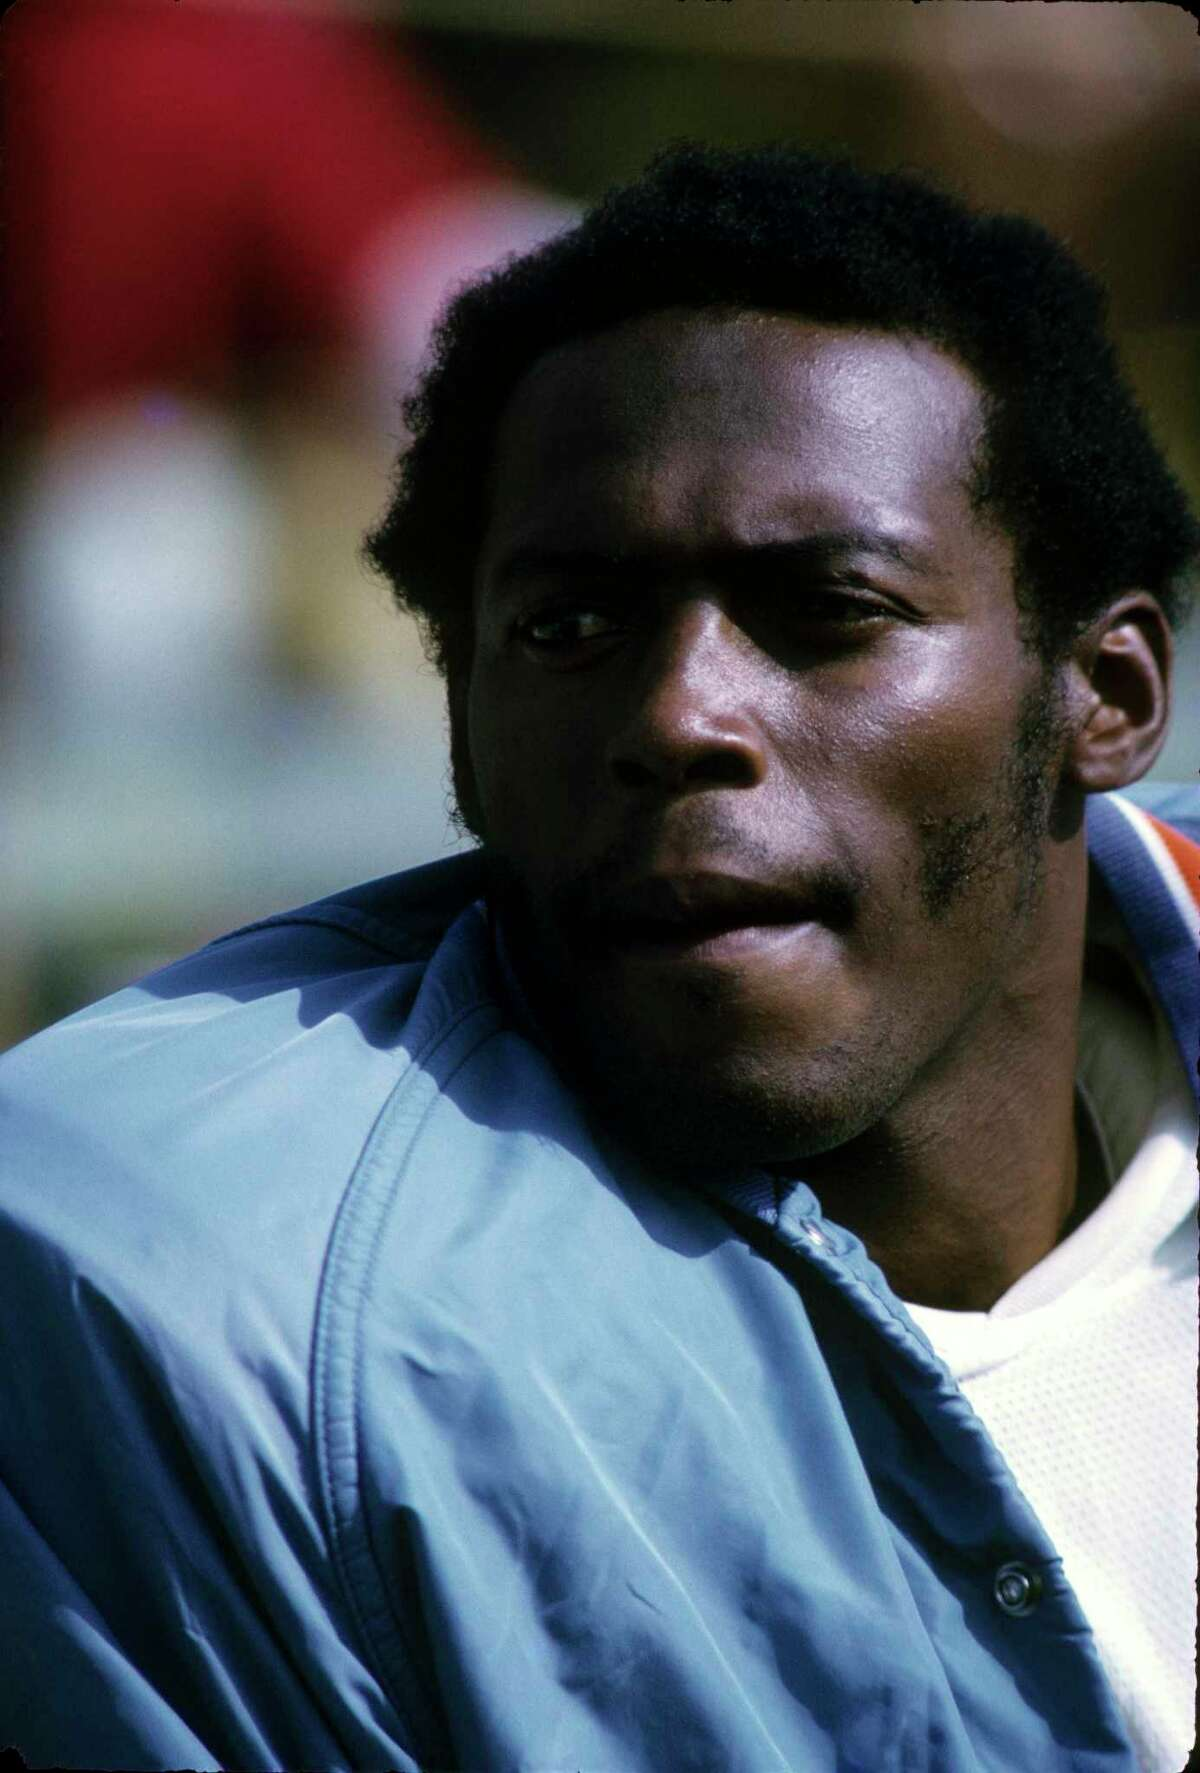 UNDATED -1971: Runningback Floyd Little of the Denver Broncos looks on from the sidelines during a game in the 1971 Season. (Photo by:Diamond Images/Getty Images)